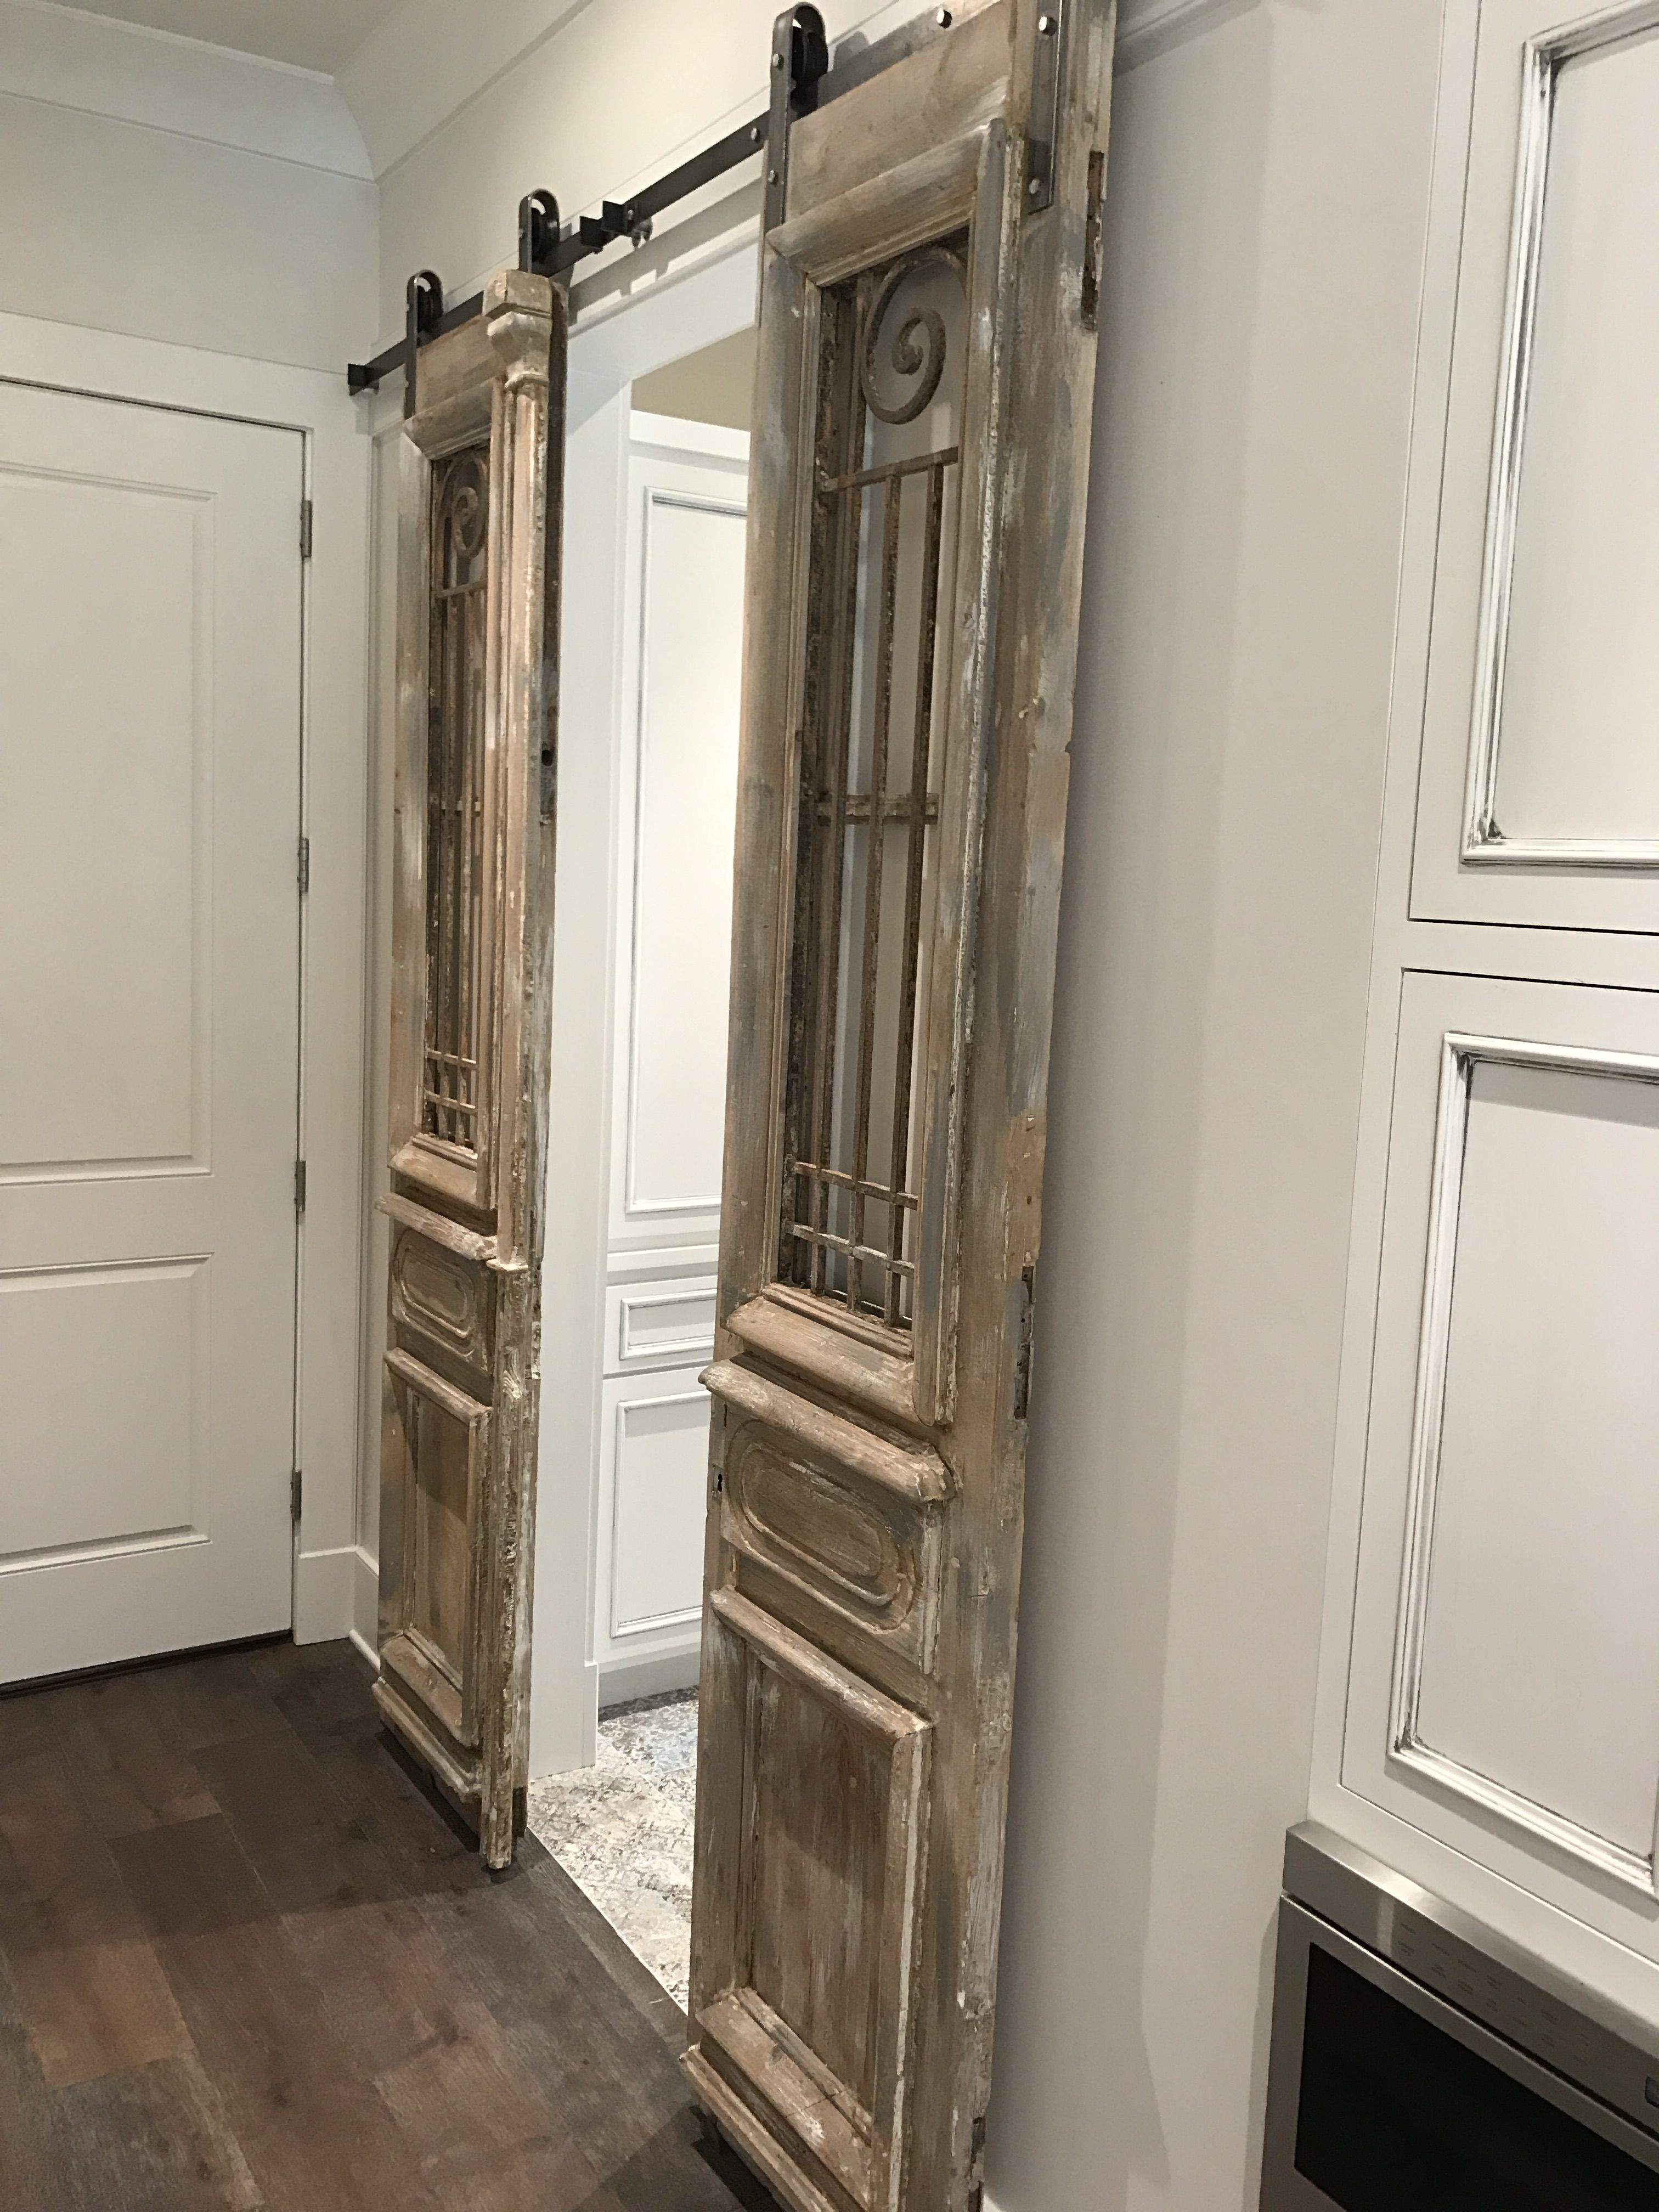 Our Antique French Iron Doors Hung Barn Door Style Laundry Room